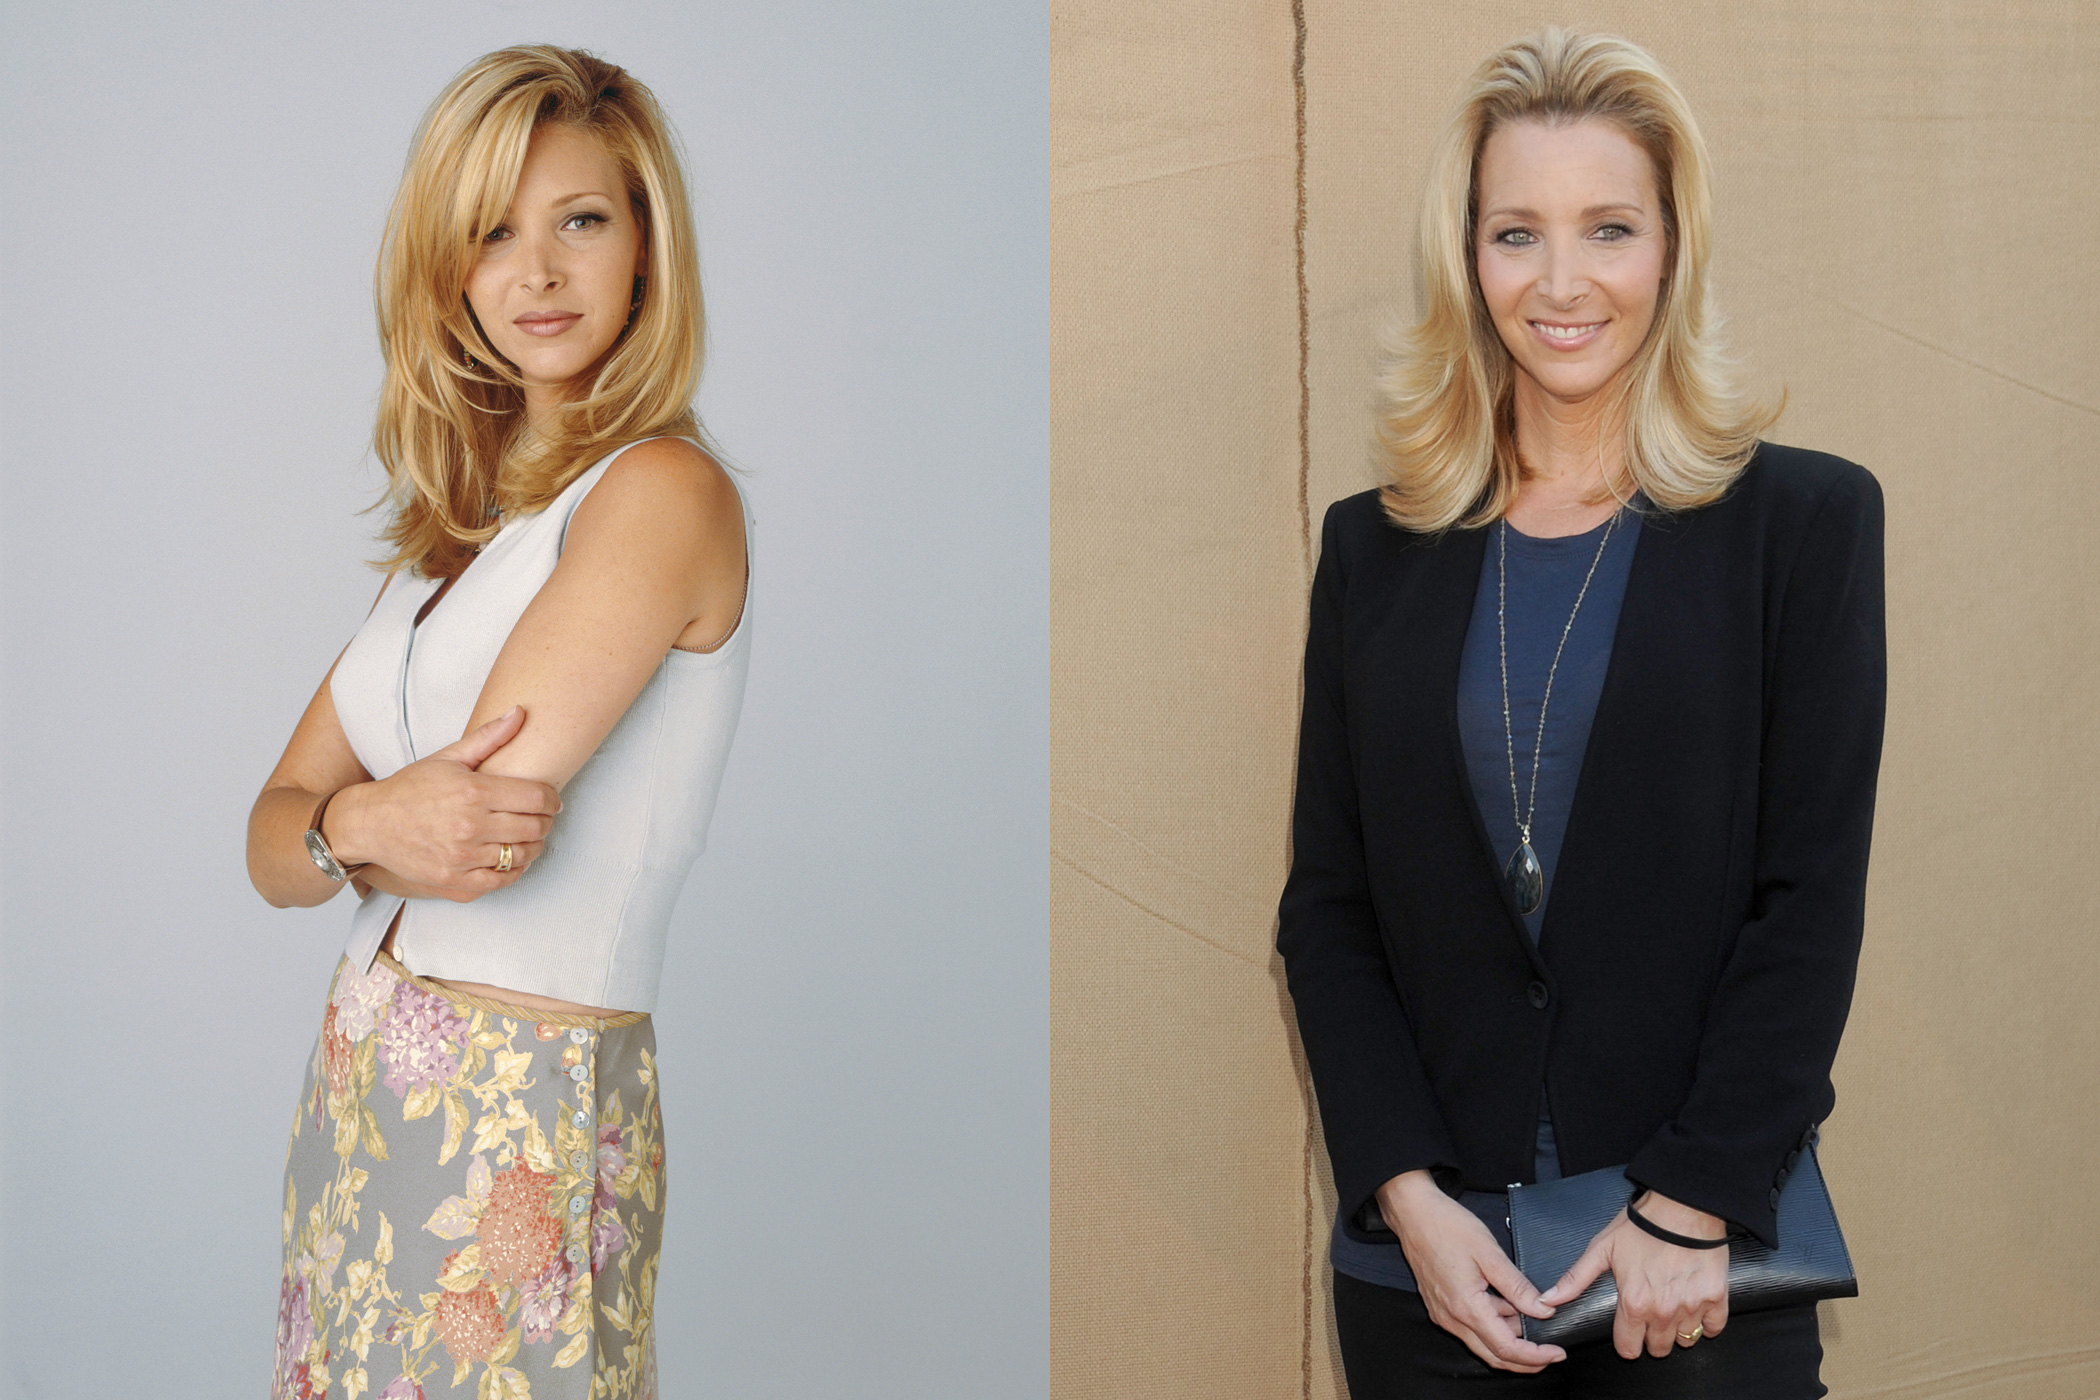 <strong>3. Lisa Kudrow (Phoebe Buffay)</strong>                                   Always a fan favorite, Kudrow has landed movie roles and various guest appearances on <i>Scandal</i> and <i>Parks and Recreation</i>. Her most notable work is her web-turned-Showtime series <i>Web Therapy</i> and HBO's recently renewed <i>The Comeback</i>.